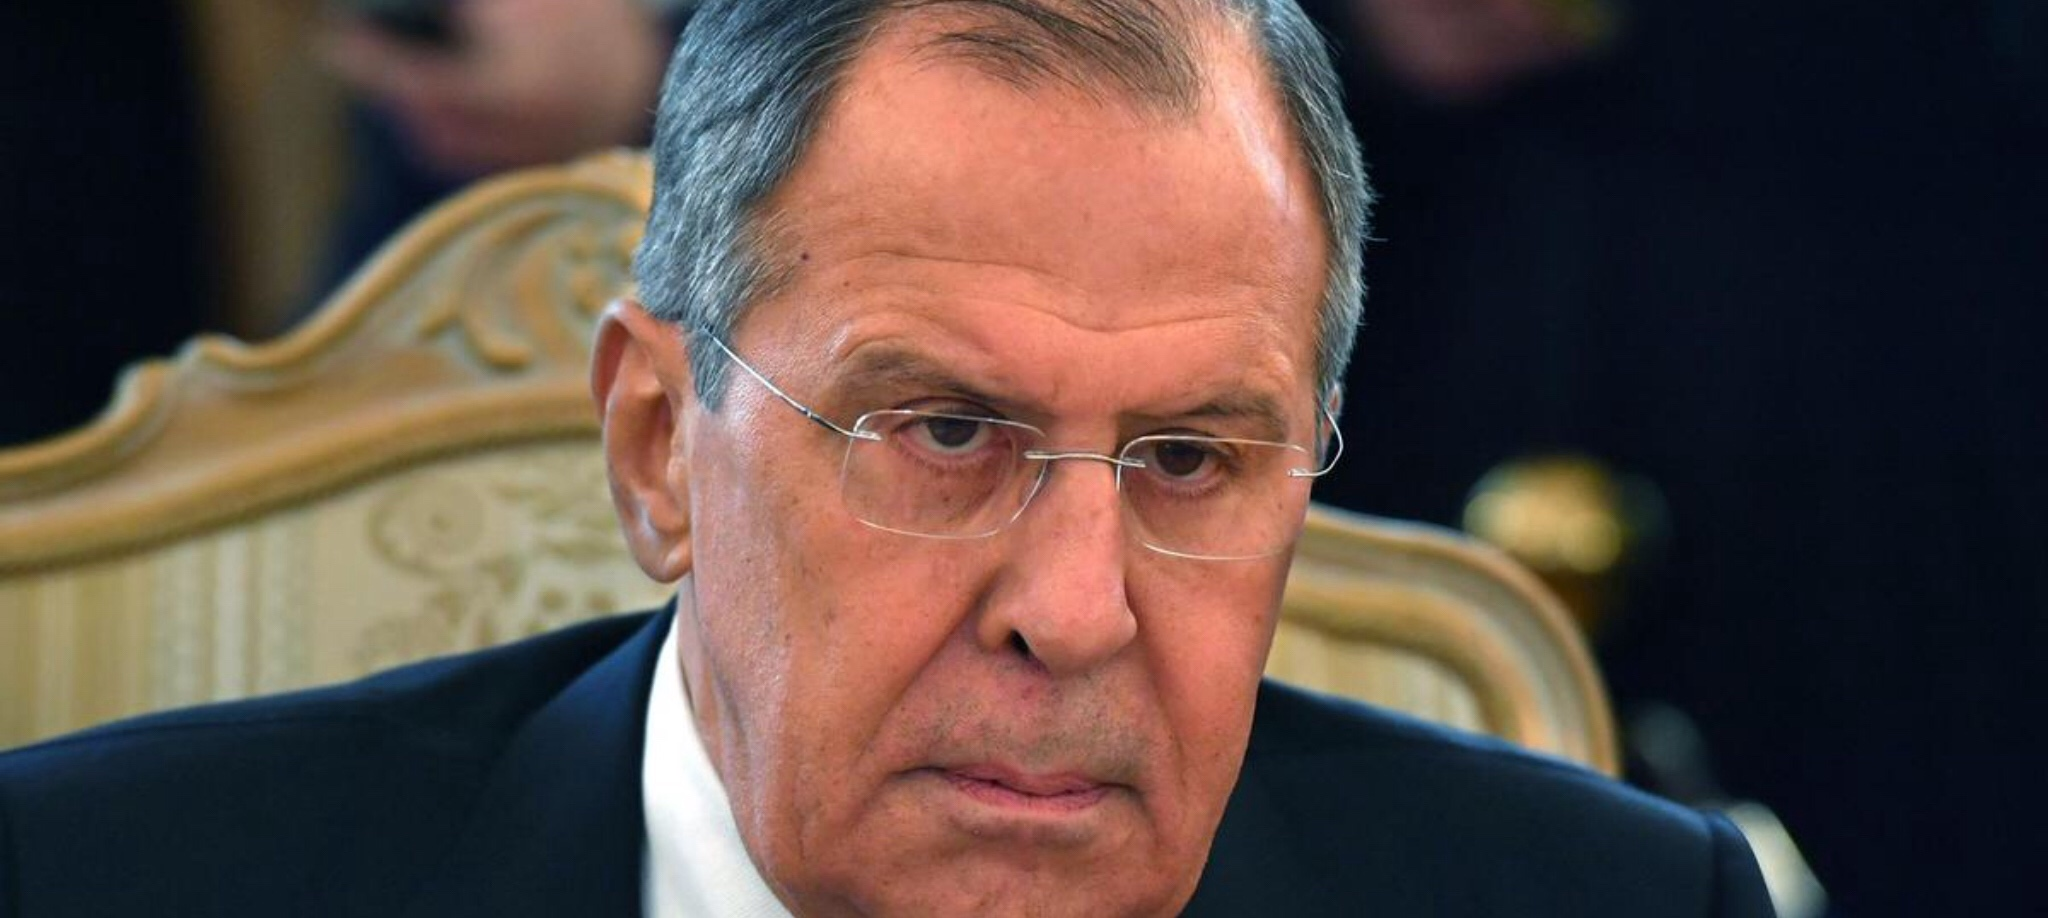 Lavrov birthday and birth of Politburo II